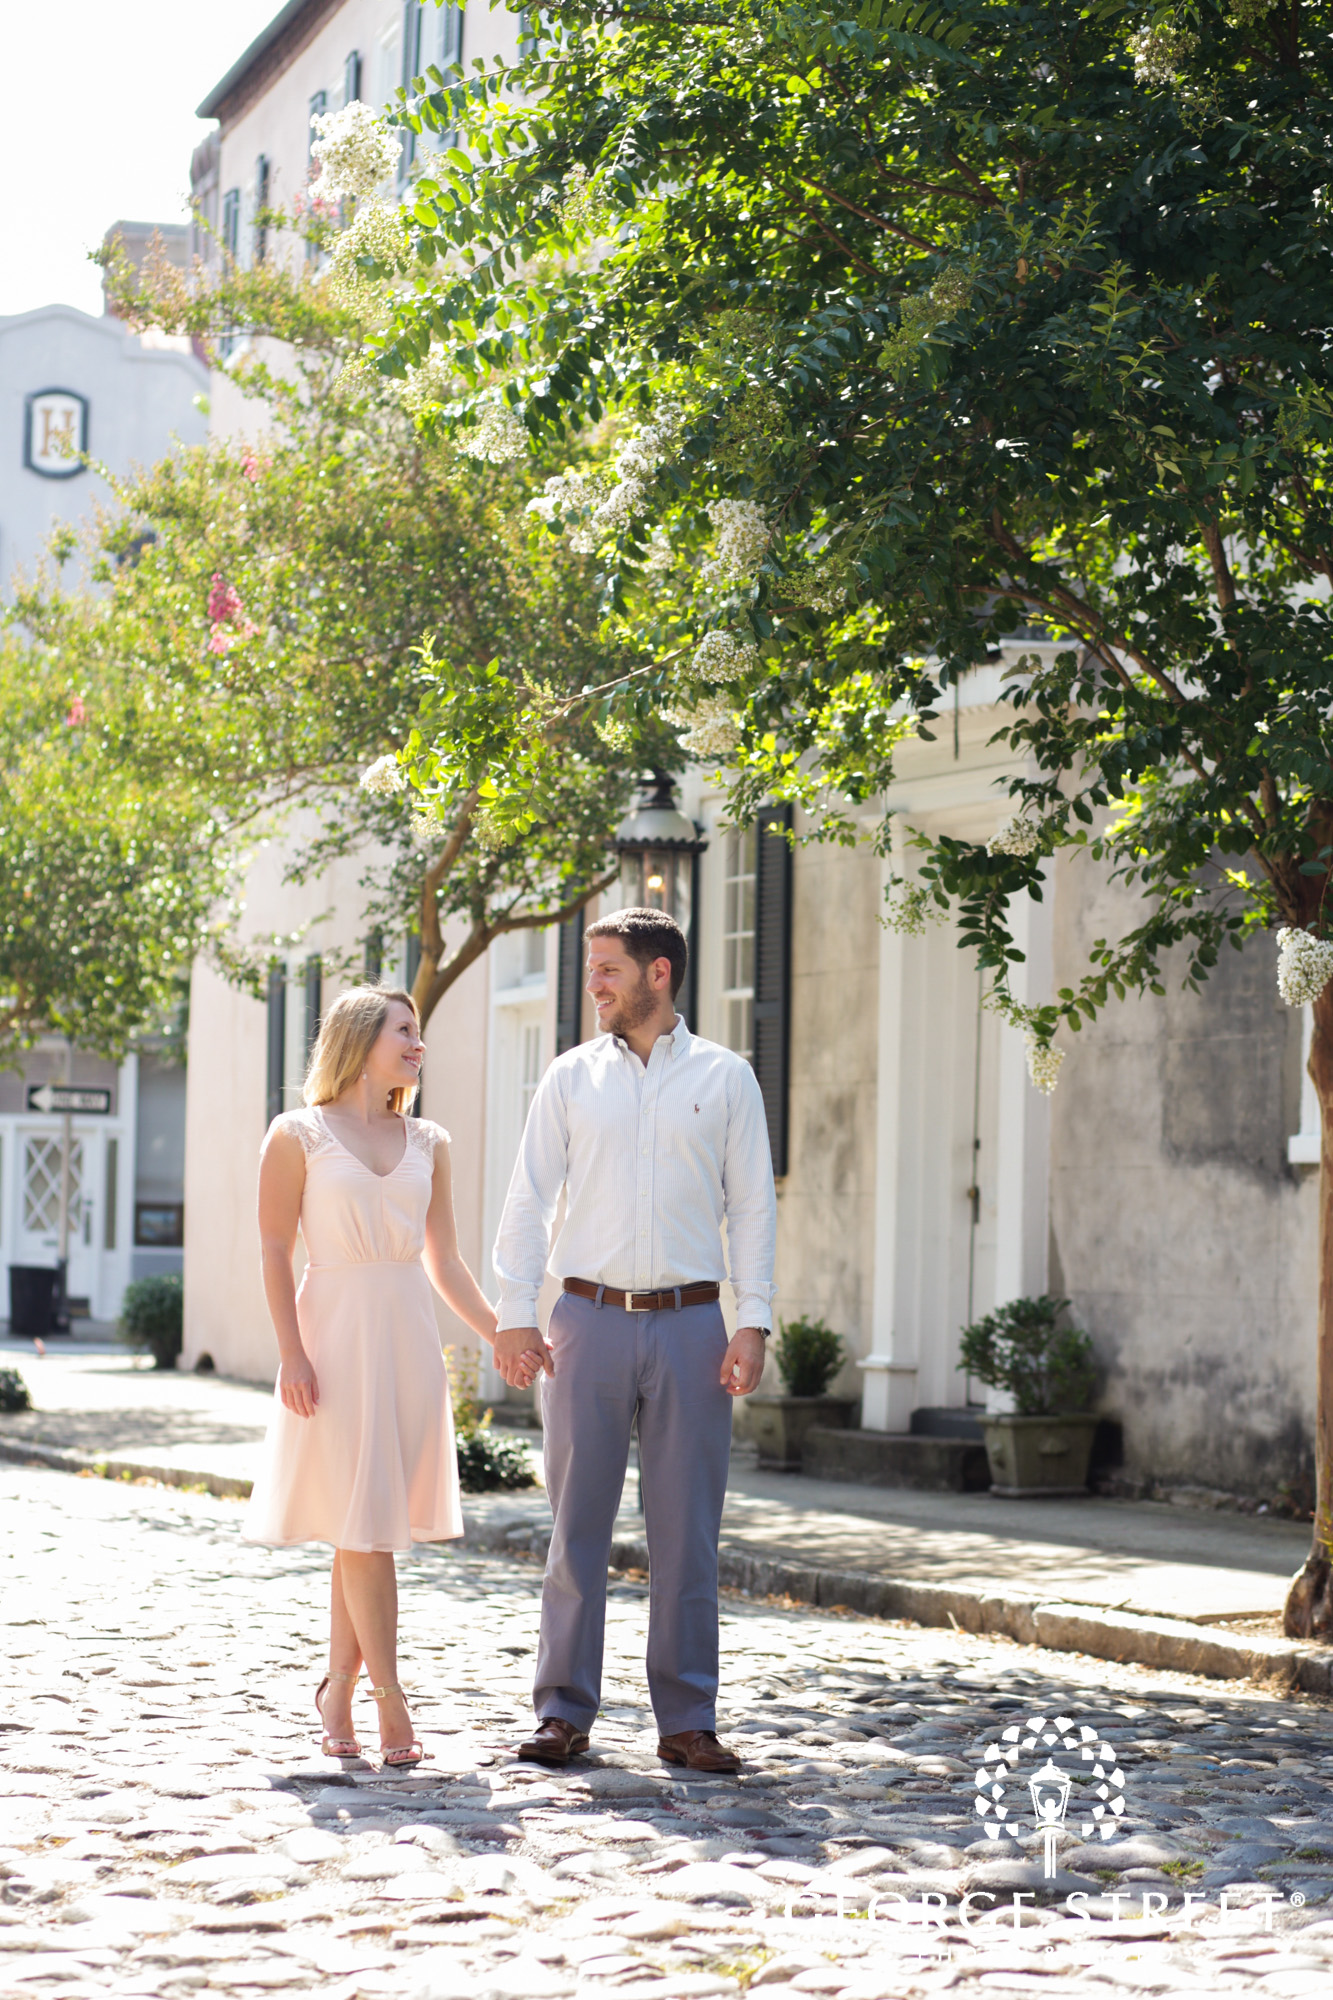 charleston historic district sunny outdoor engagement portraits candid